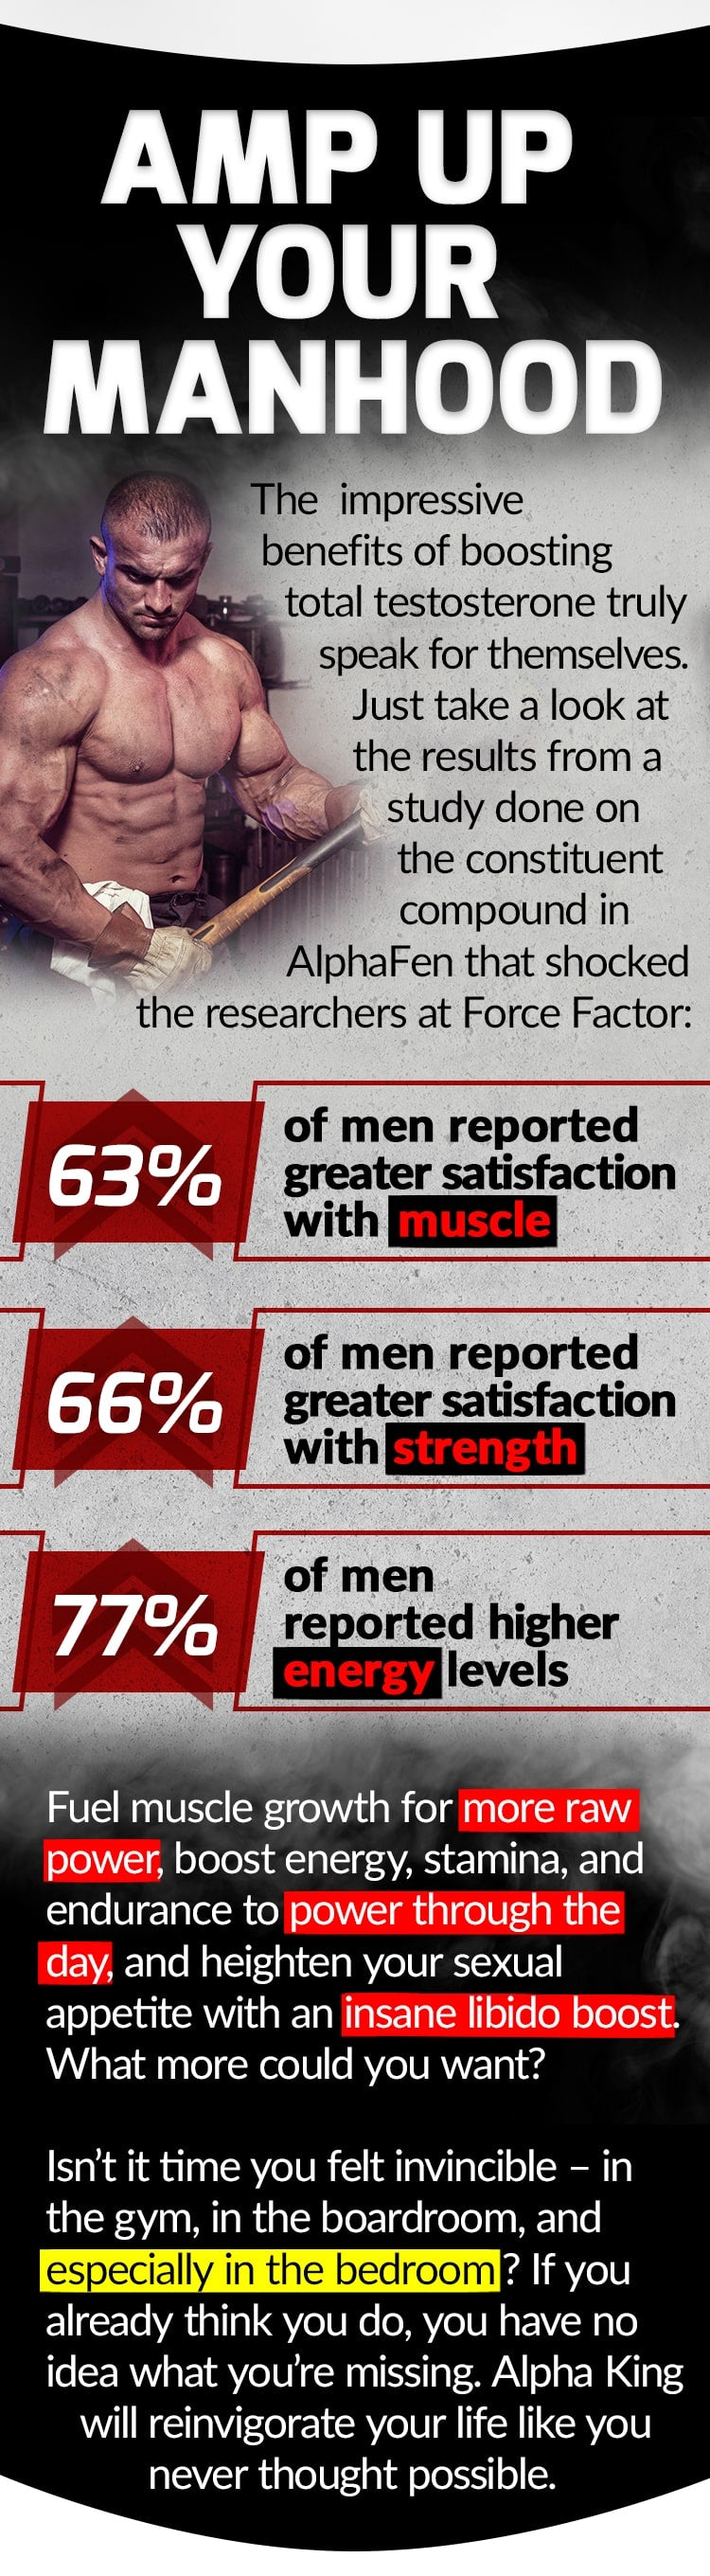 AMP UP YOUR MANHOOD. The impressive benefits of boosting total testosterone speak for themselves. Just take a look at the results from a study done on the constituent compound in AlphaFen that shocked the researchers at Force Factor: 63% of men reported greater satisfaction with muscle, 66% of men reported greater satisfaction with strength, 77% of men reported higher energy levels. Fuel muscle growth for more raw power, boost energy, stamina, and endurance to power through the day, and heighten your sexual appetite with an insane libido boost, What more could you want? Isn't it time you felt invincible – in the gym, in the boardroom, and especially in the bedroom? If you already think you do, you have no idea what you're missing. Alpha King will reinvigorate your life like you never thought possible.